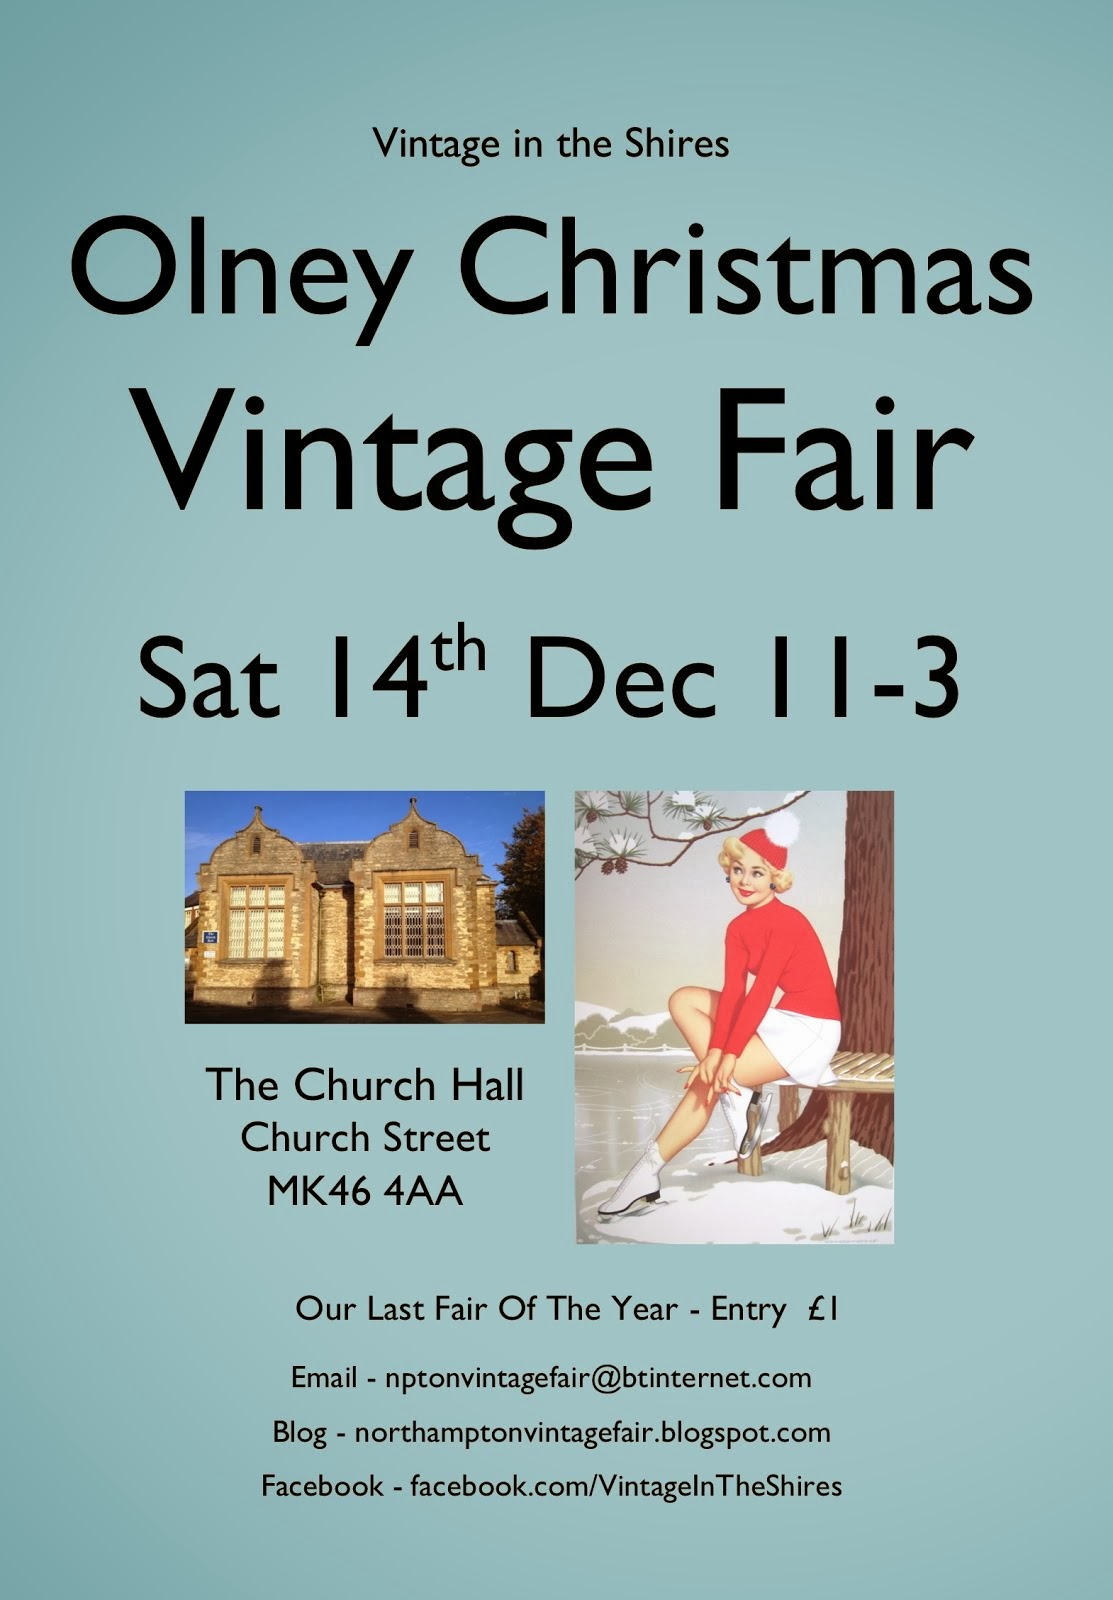 Olney Christmas Vintage Fair